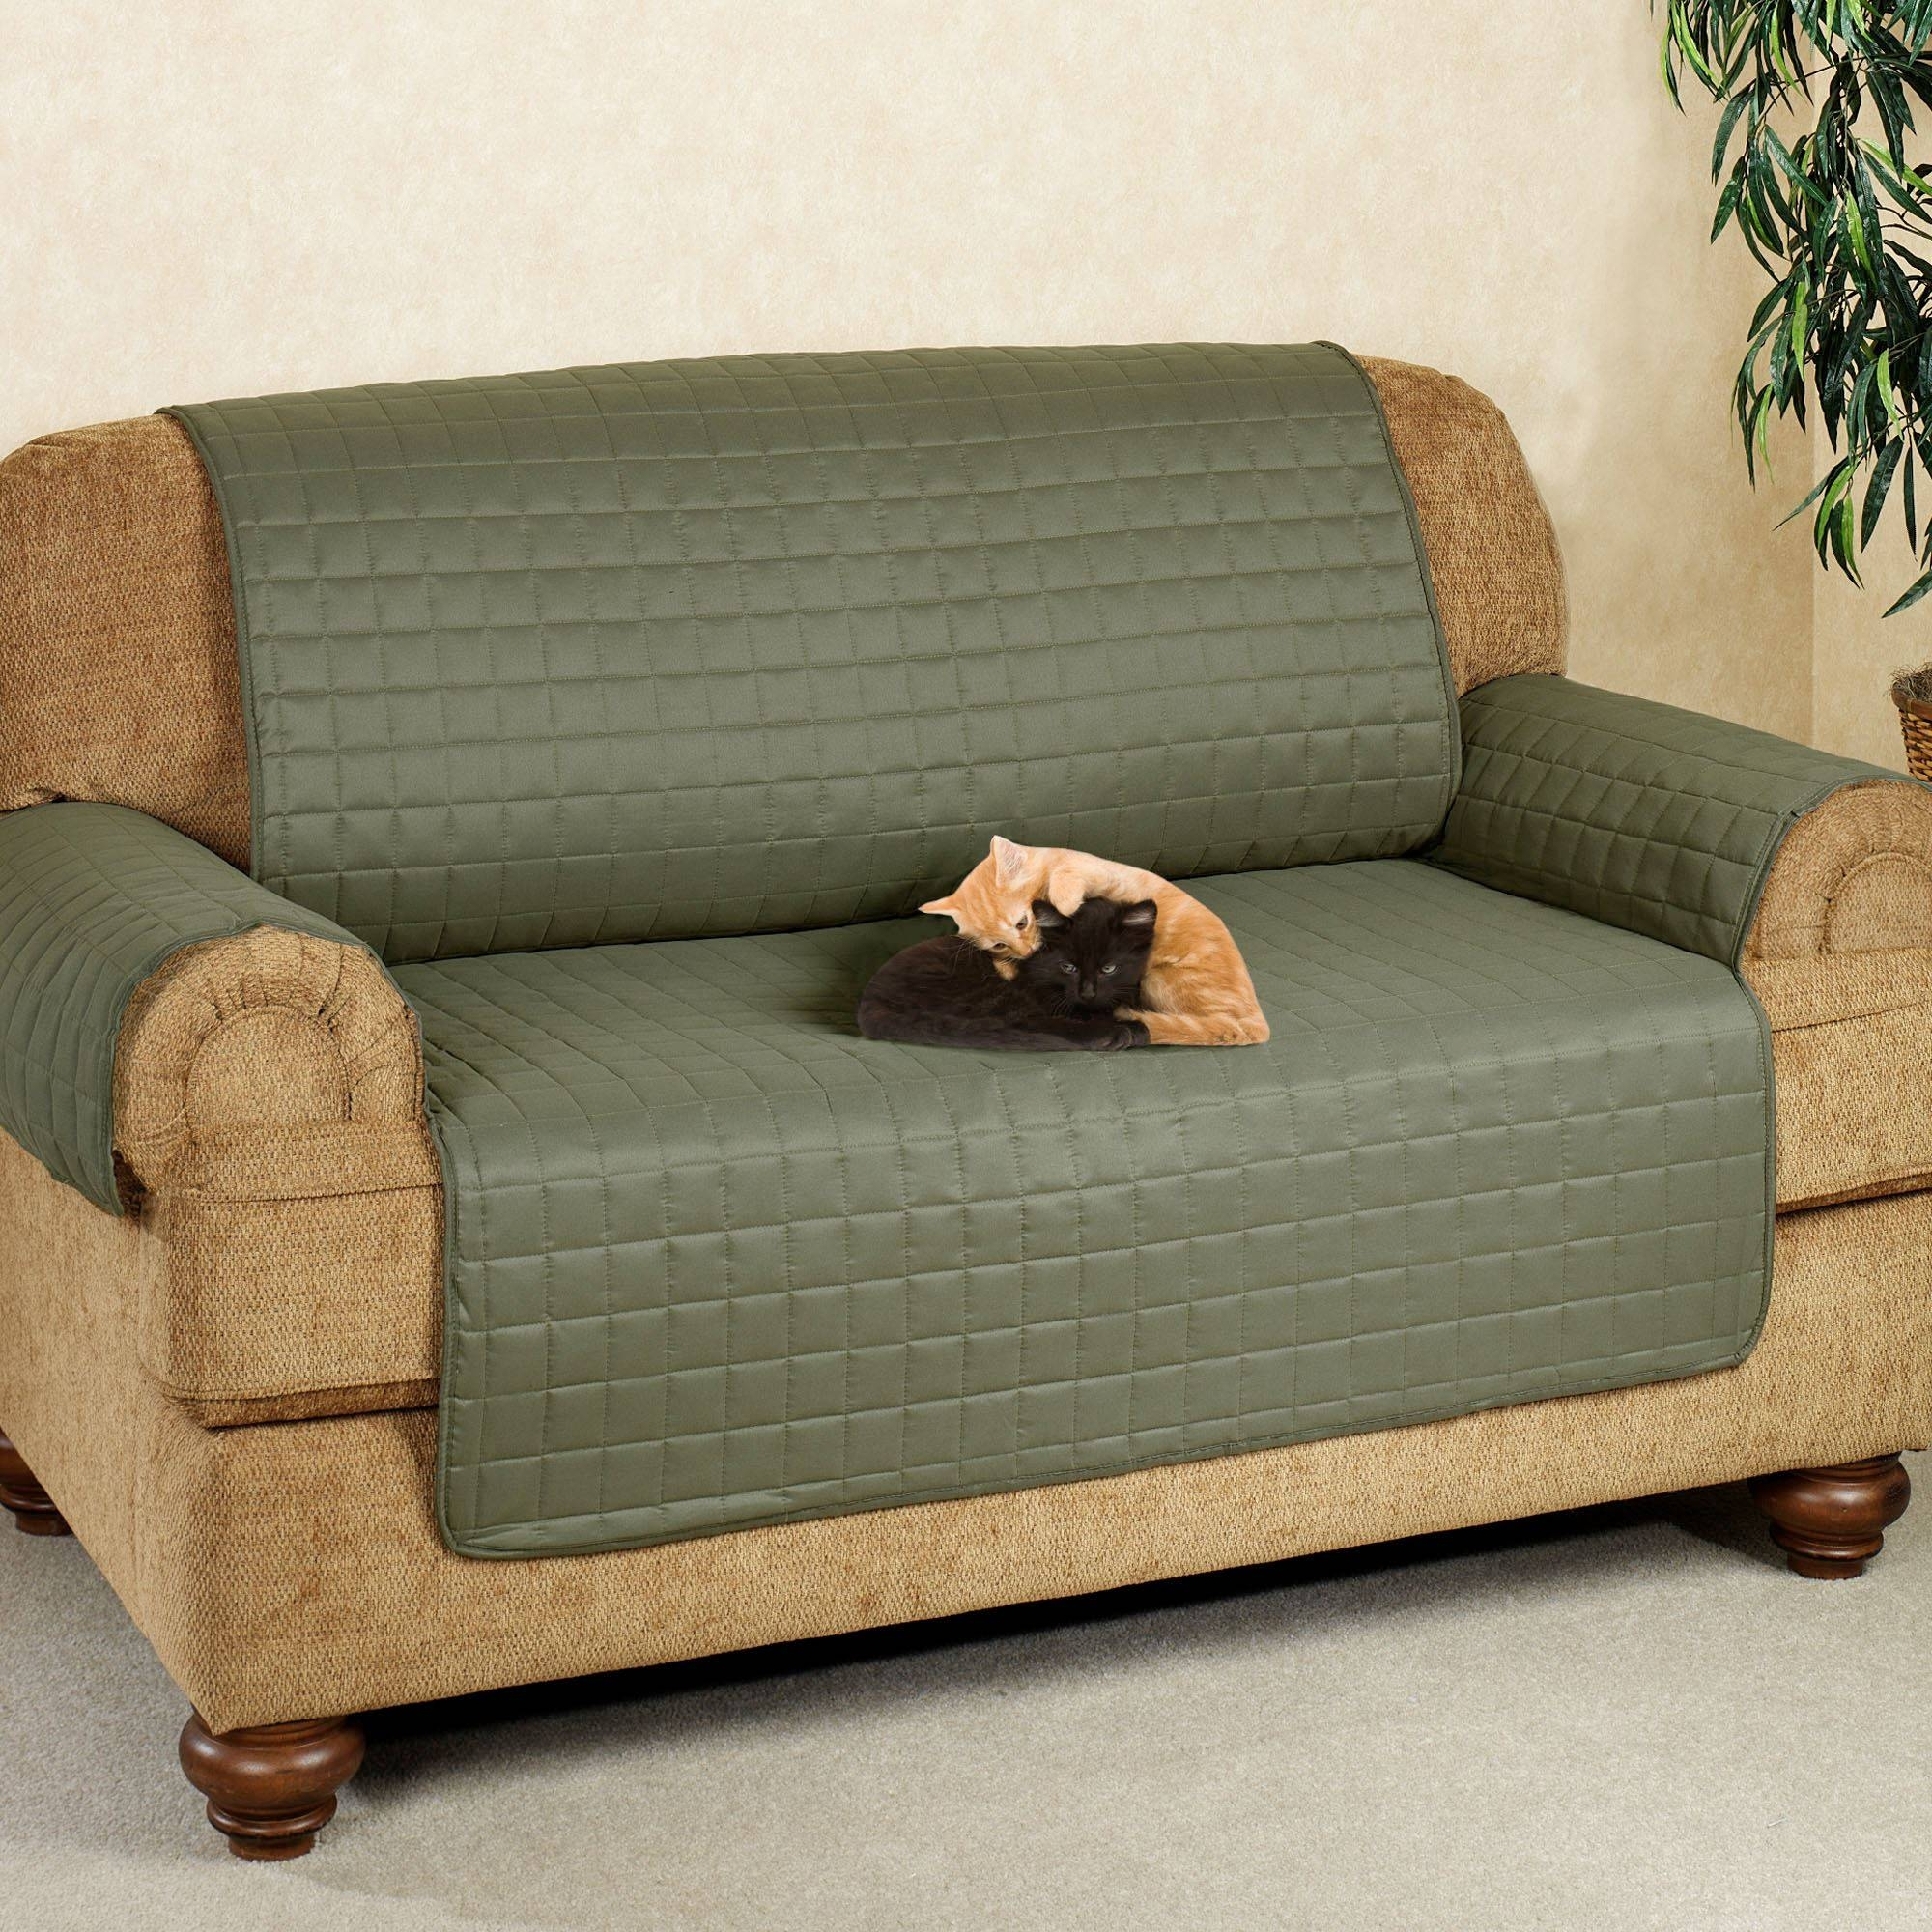 Sofas Center : Fascinating Pet Covers For Sofas Picture for Covers For Sofas And Chairs (Image 13 of 15)